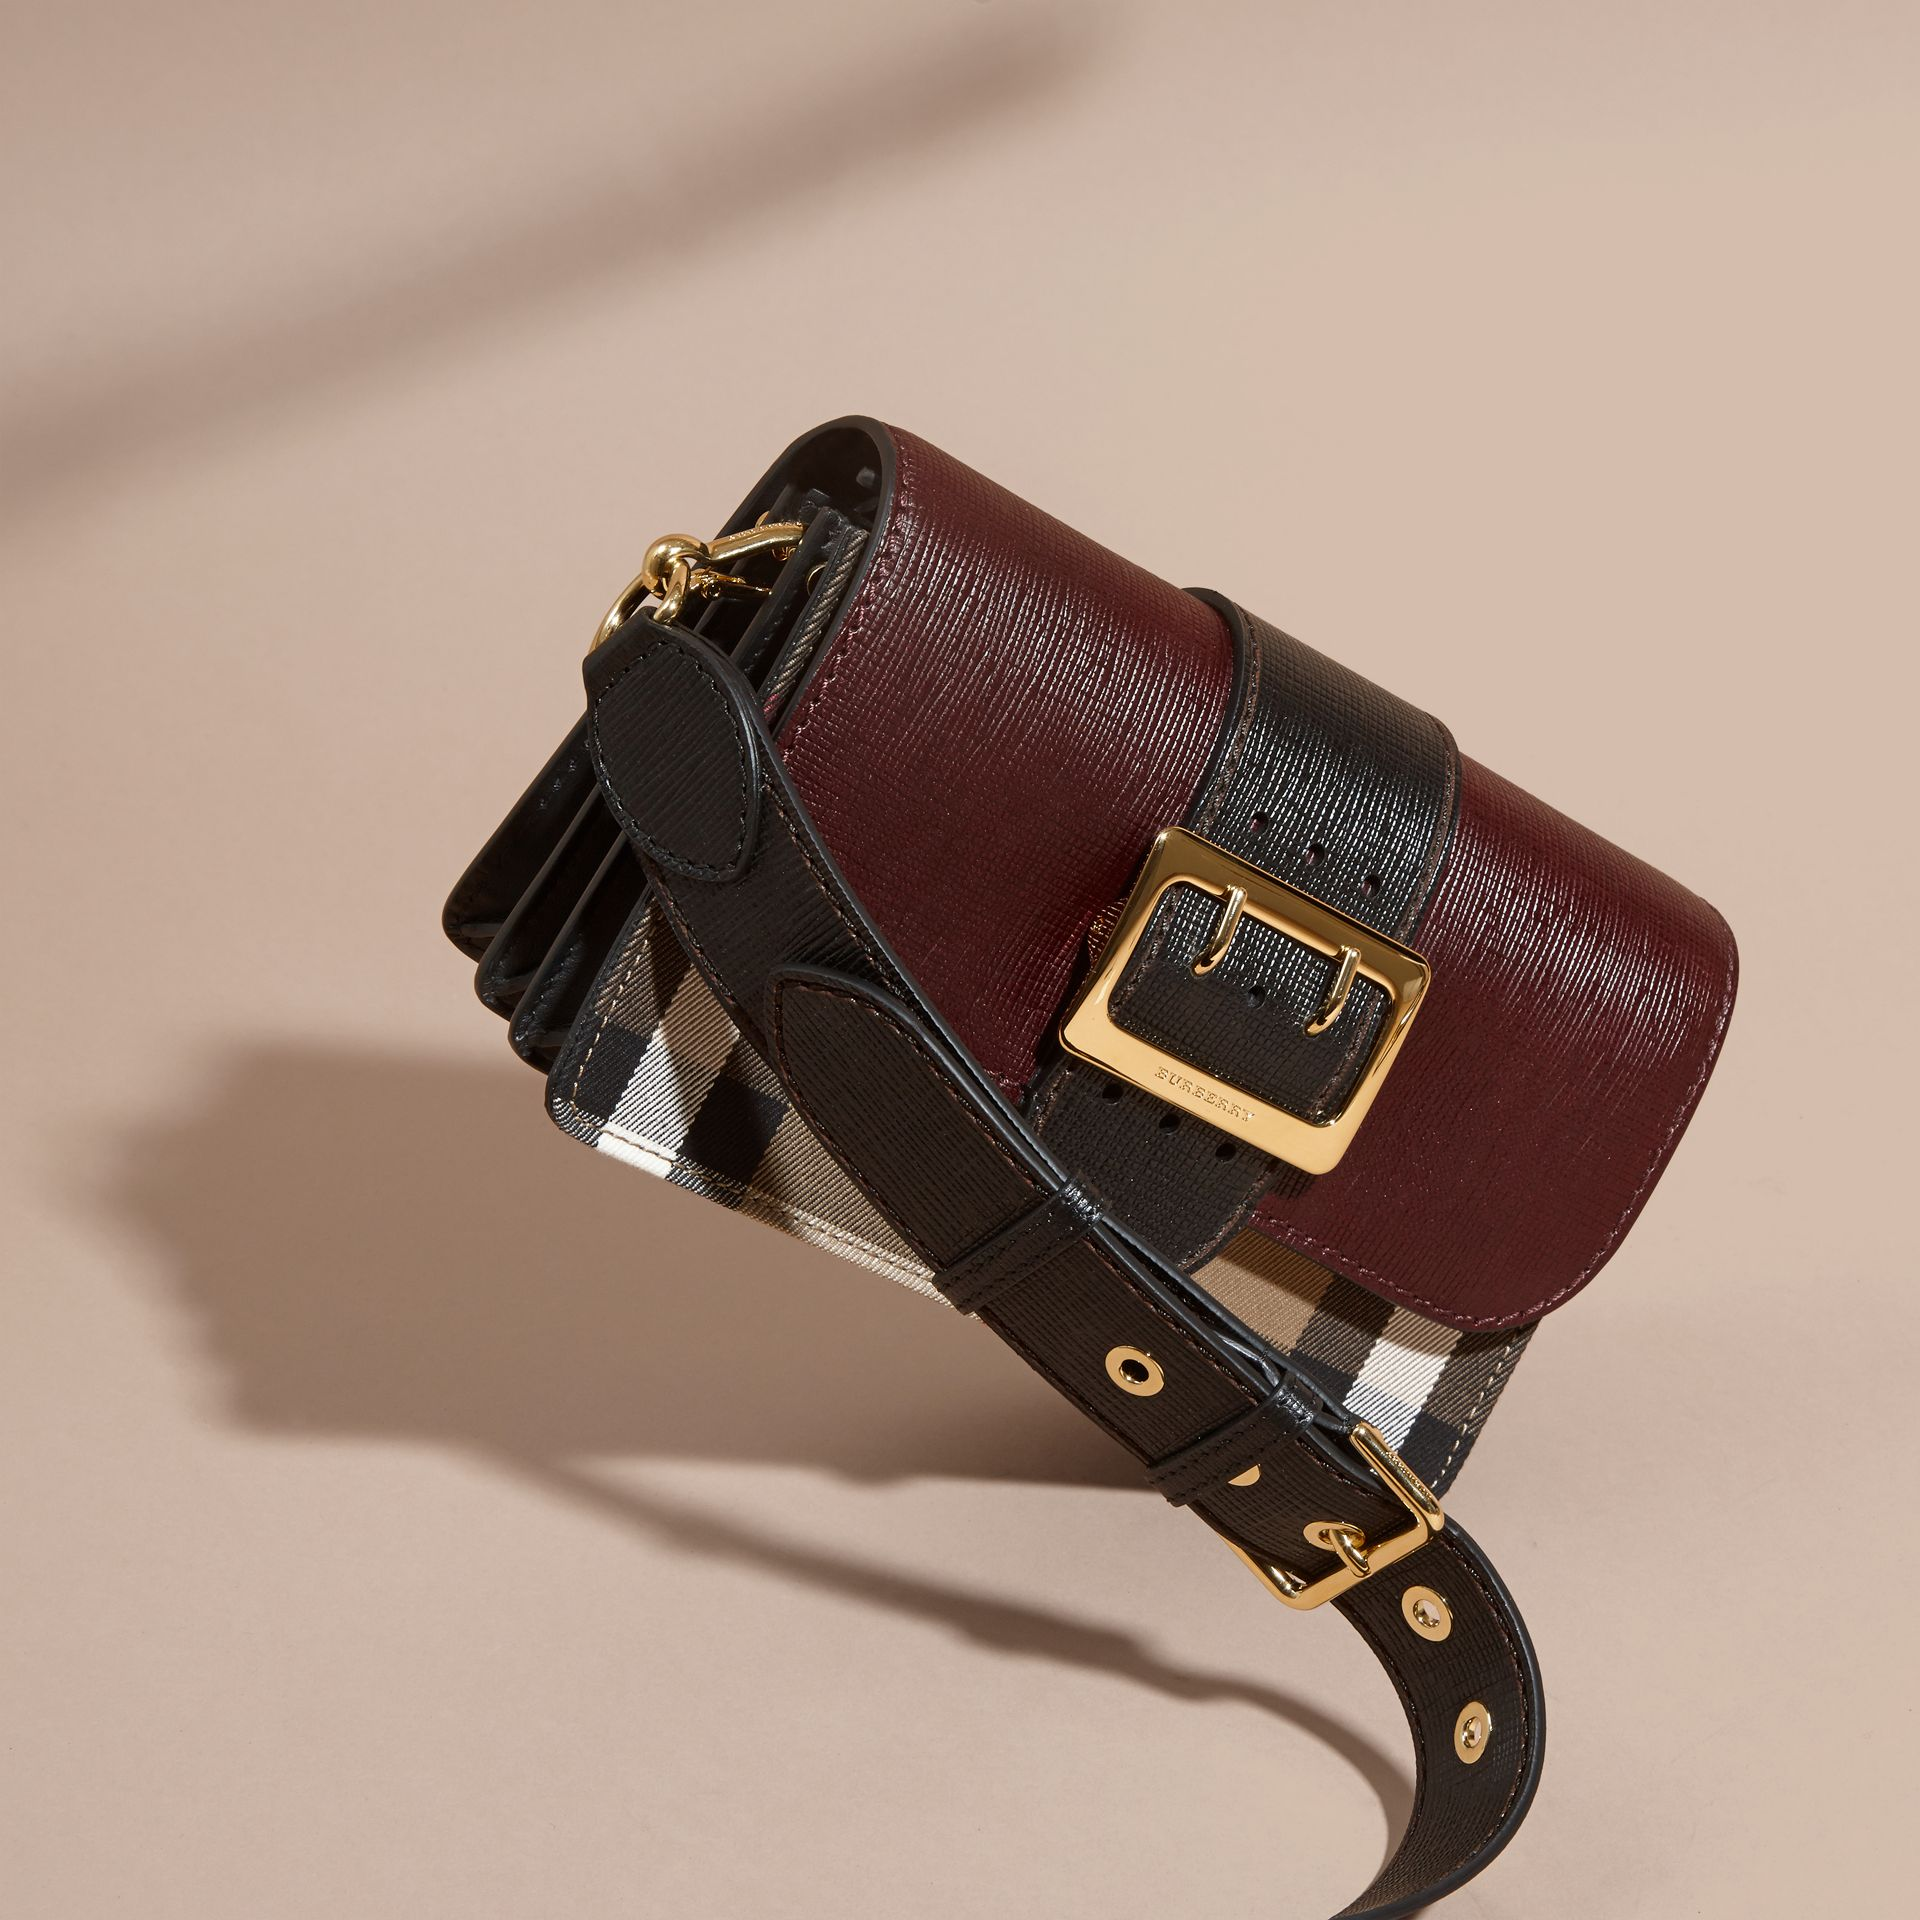 Burgundy/black The Medium Buckle Bag in House Check and Textured Leather Burgundy/black - gallery image 8